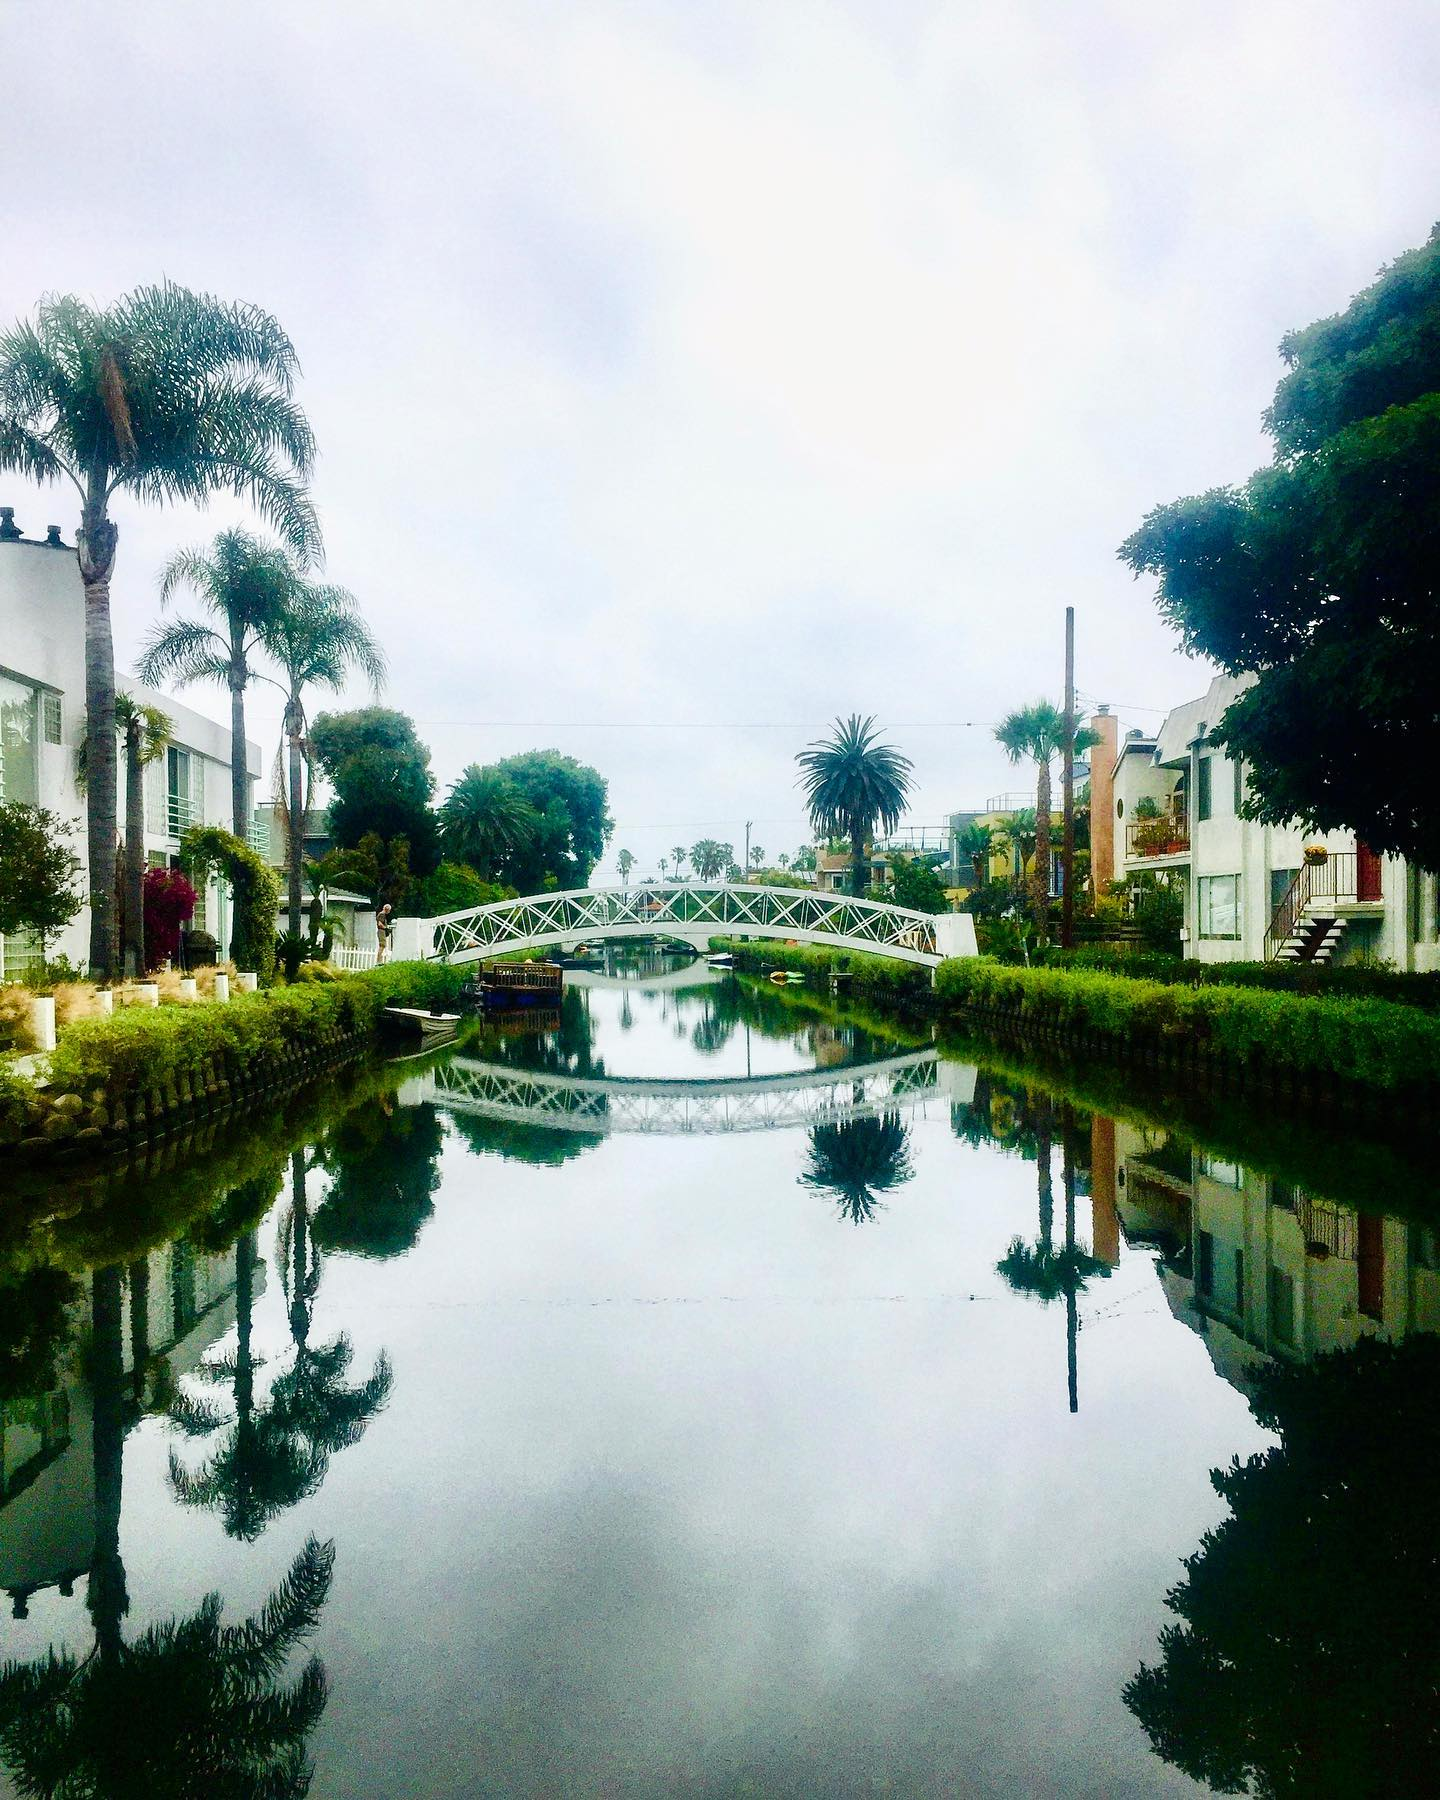 Venice Canal Walkway, LA, California  Beautiful place to take a stroll if you're in the area, only a few minutes away from Venice Beach. A hidden gem in busy LA. #usatravels #unitedstates #unitedstateofamerica #california #socal #la #cityphotography #citylife #ladreaming #venicebeach #venicecalifornia #venicecanals #travelphotography #travelgram #travelblogger #losangeles #losangelesphotography #morningstroll #instatraveler #wanderlust #traveladdict